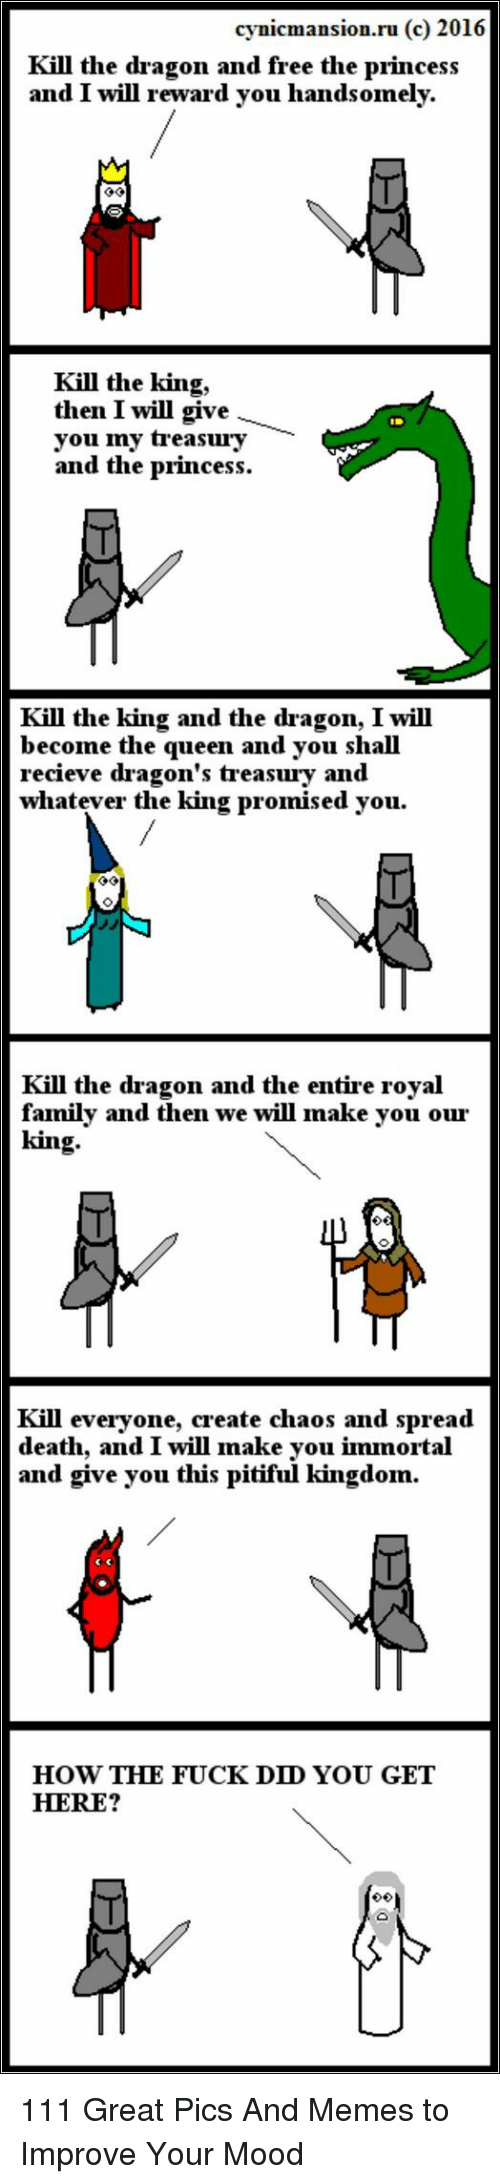 Pitiful: cynicmansion.ru (c) 2016  Kill the dragon and free the princes:s  and I will reward vou handsomely.  Kill the king,  then I will give  you ny treasury  and the princess.  Kill the king and the dragon, I will  become the queen and you shall  recieve dragon's treasury and  whatever the king promised you.  Kill the dragon and the entire royal  family and then we will make you our  king  Kill everyone, create chaos and spread  death, and I will make you immortal  and give you this pitiful kingdon.  HOW THE FUCK DD YOU GET  HERE? 111 Great Pics And Memes to Improve Your Mood